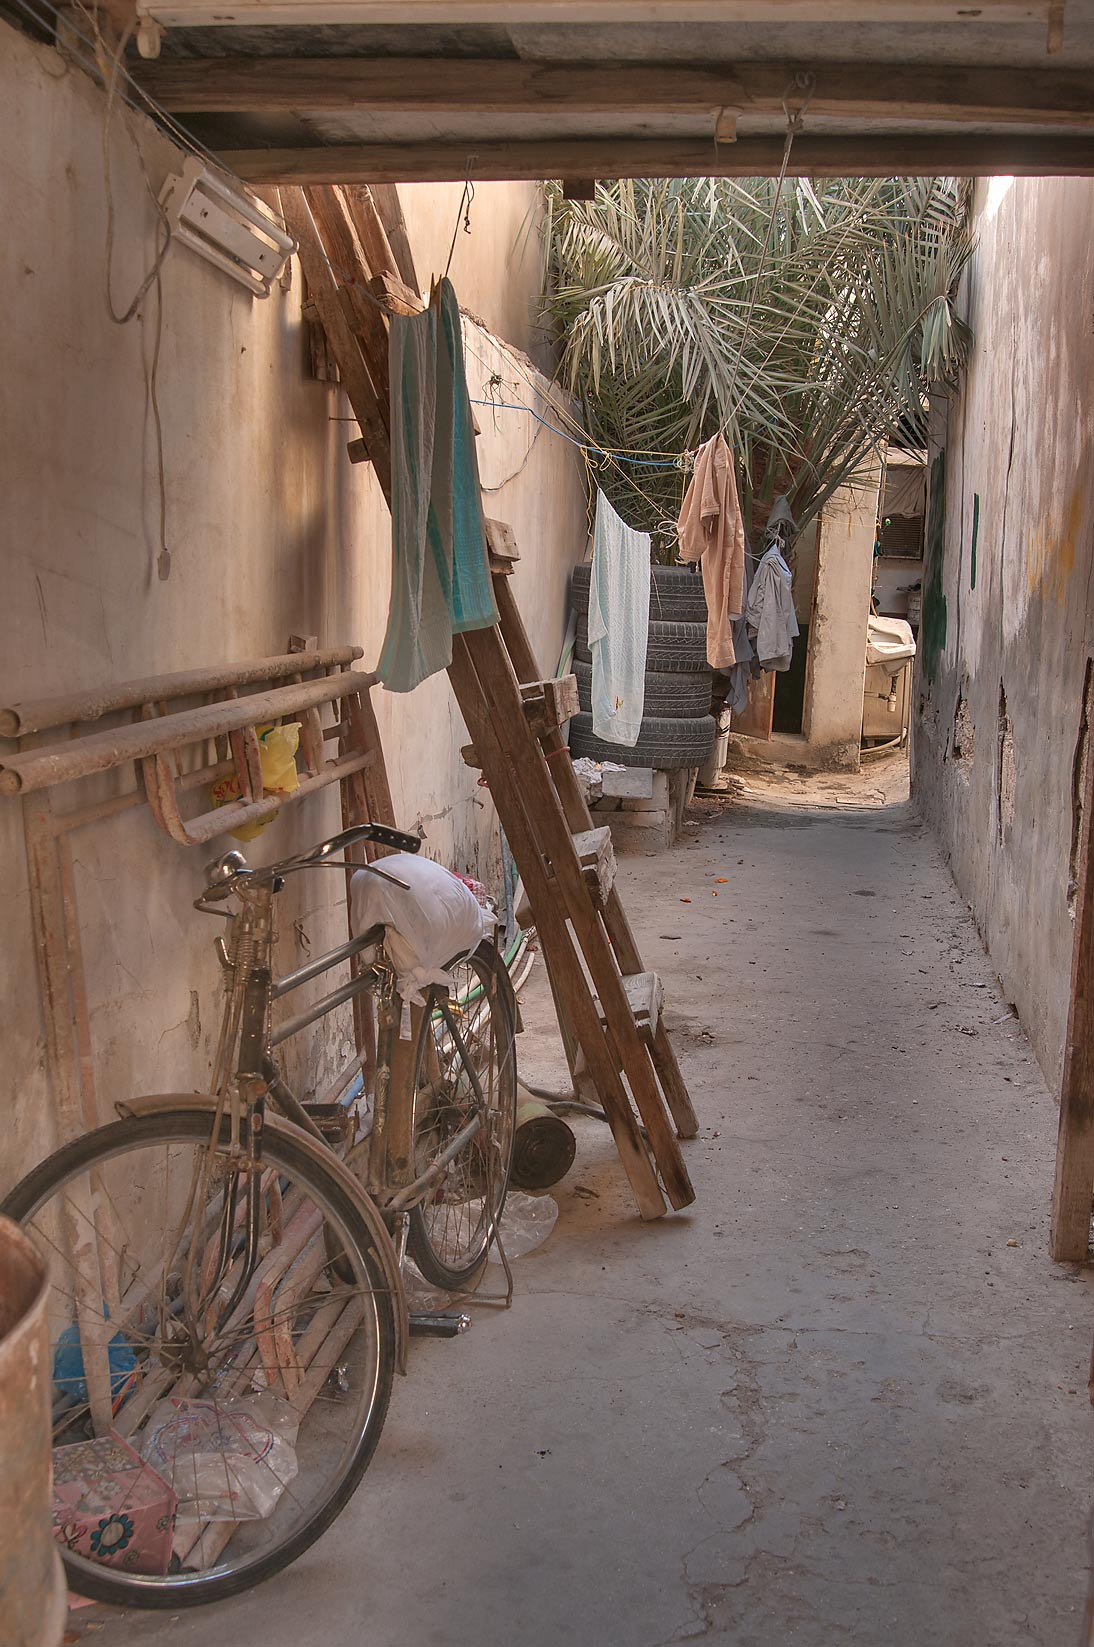 Yard passage near Ibn Abdul Muttalib St. in Old Ghanim area. Doha, Qatar